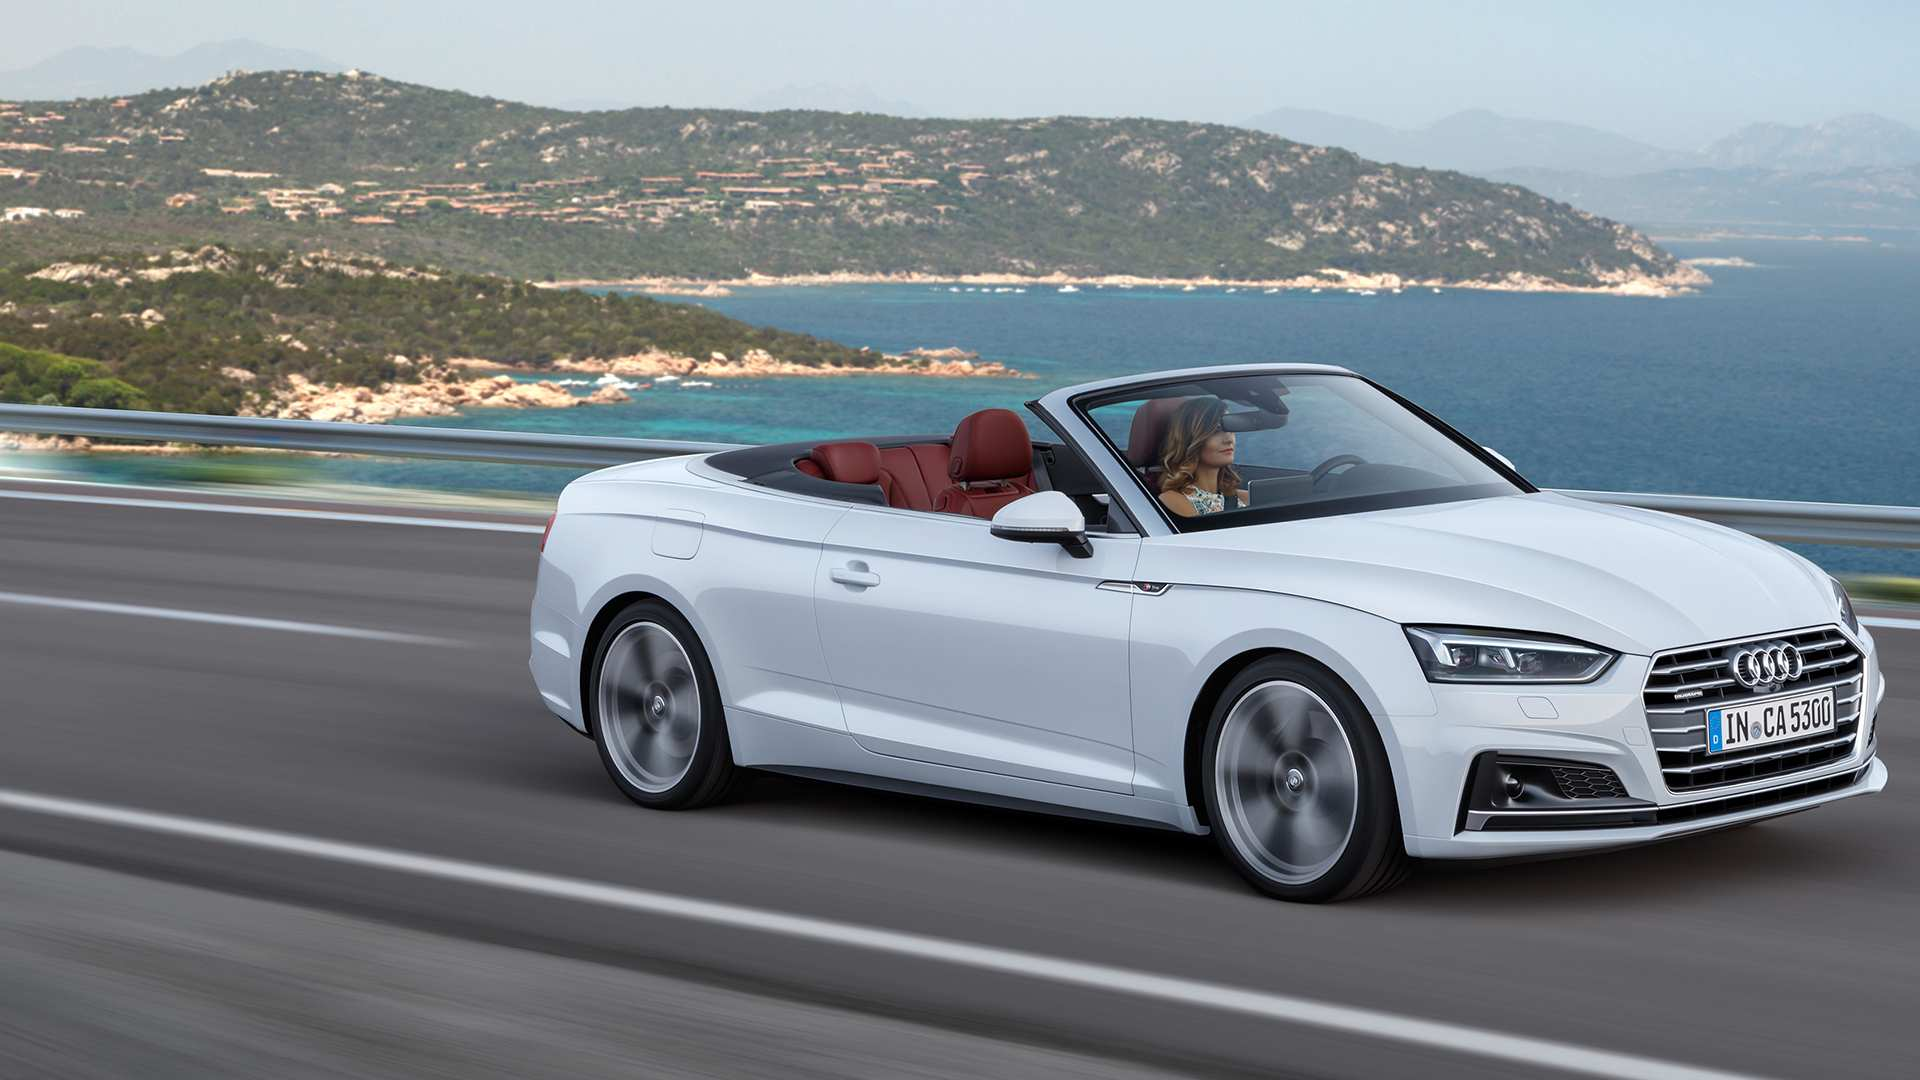 61 A 2019 Audi Rs5 Cabriolet Exterior And Interior